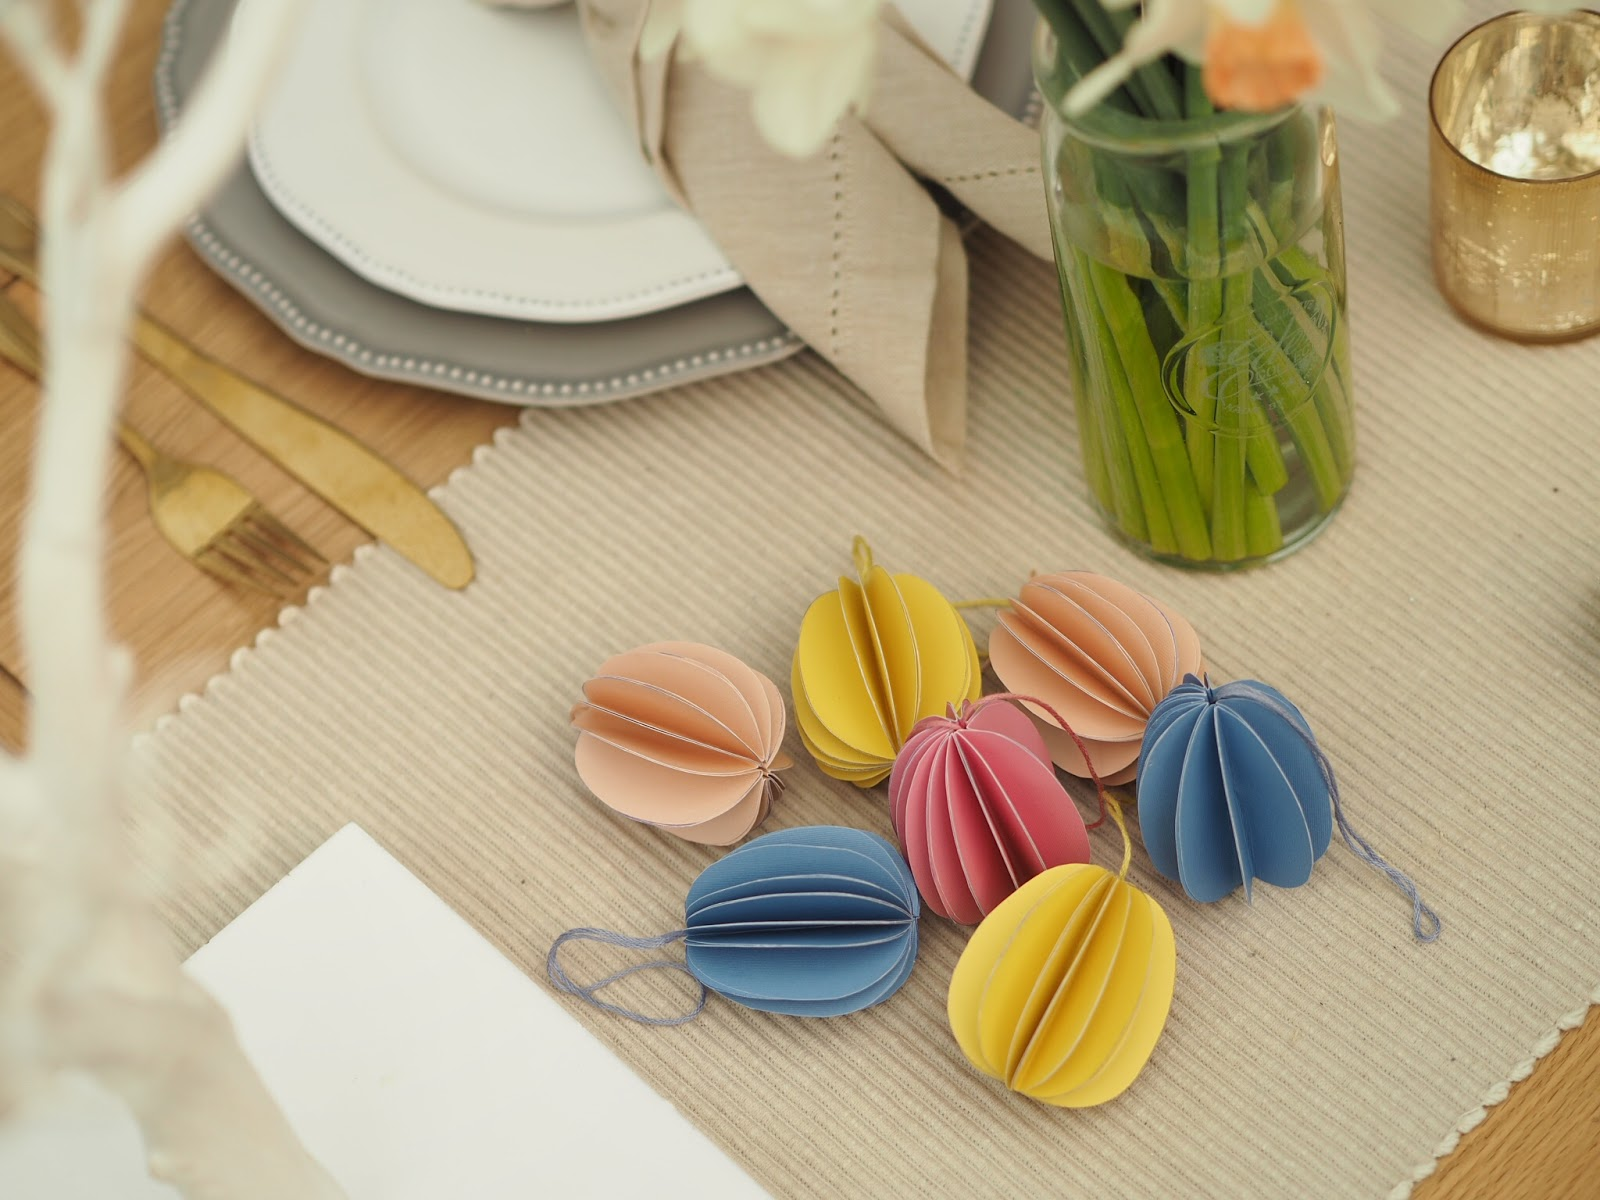 How to make Easter paper decorations in the shape of an Easter egg, perfect for decorating your home for spring, or for creating a pretty seasonal table setting. DIY tutorial craft perfect for when you're stuck inside at home on lockdown.